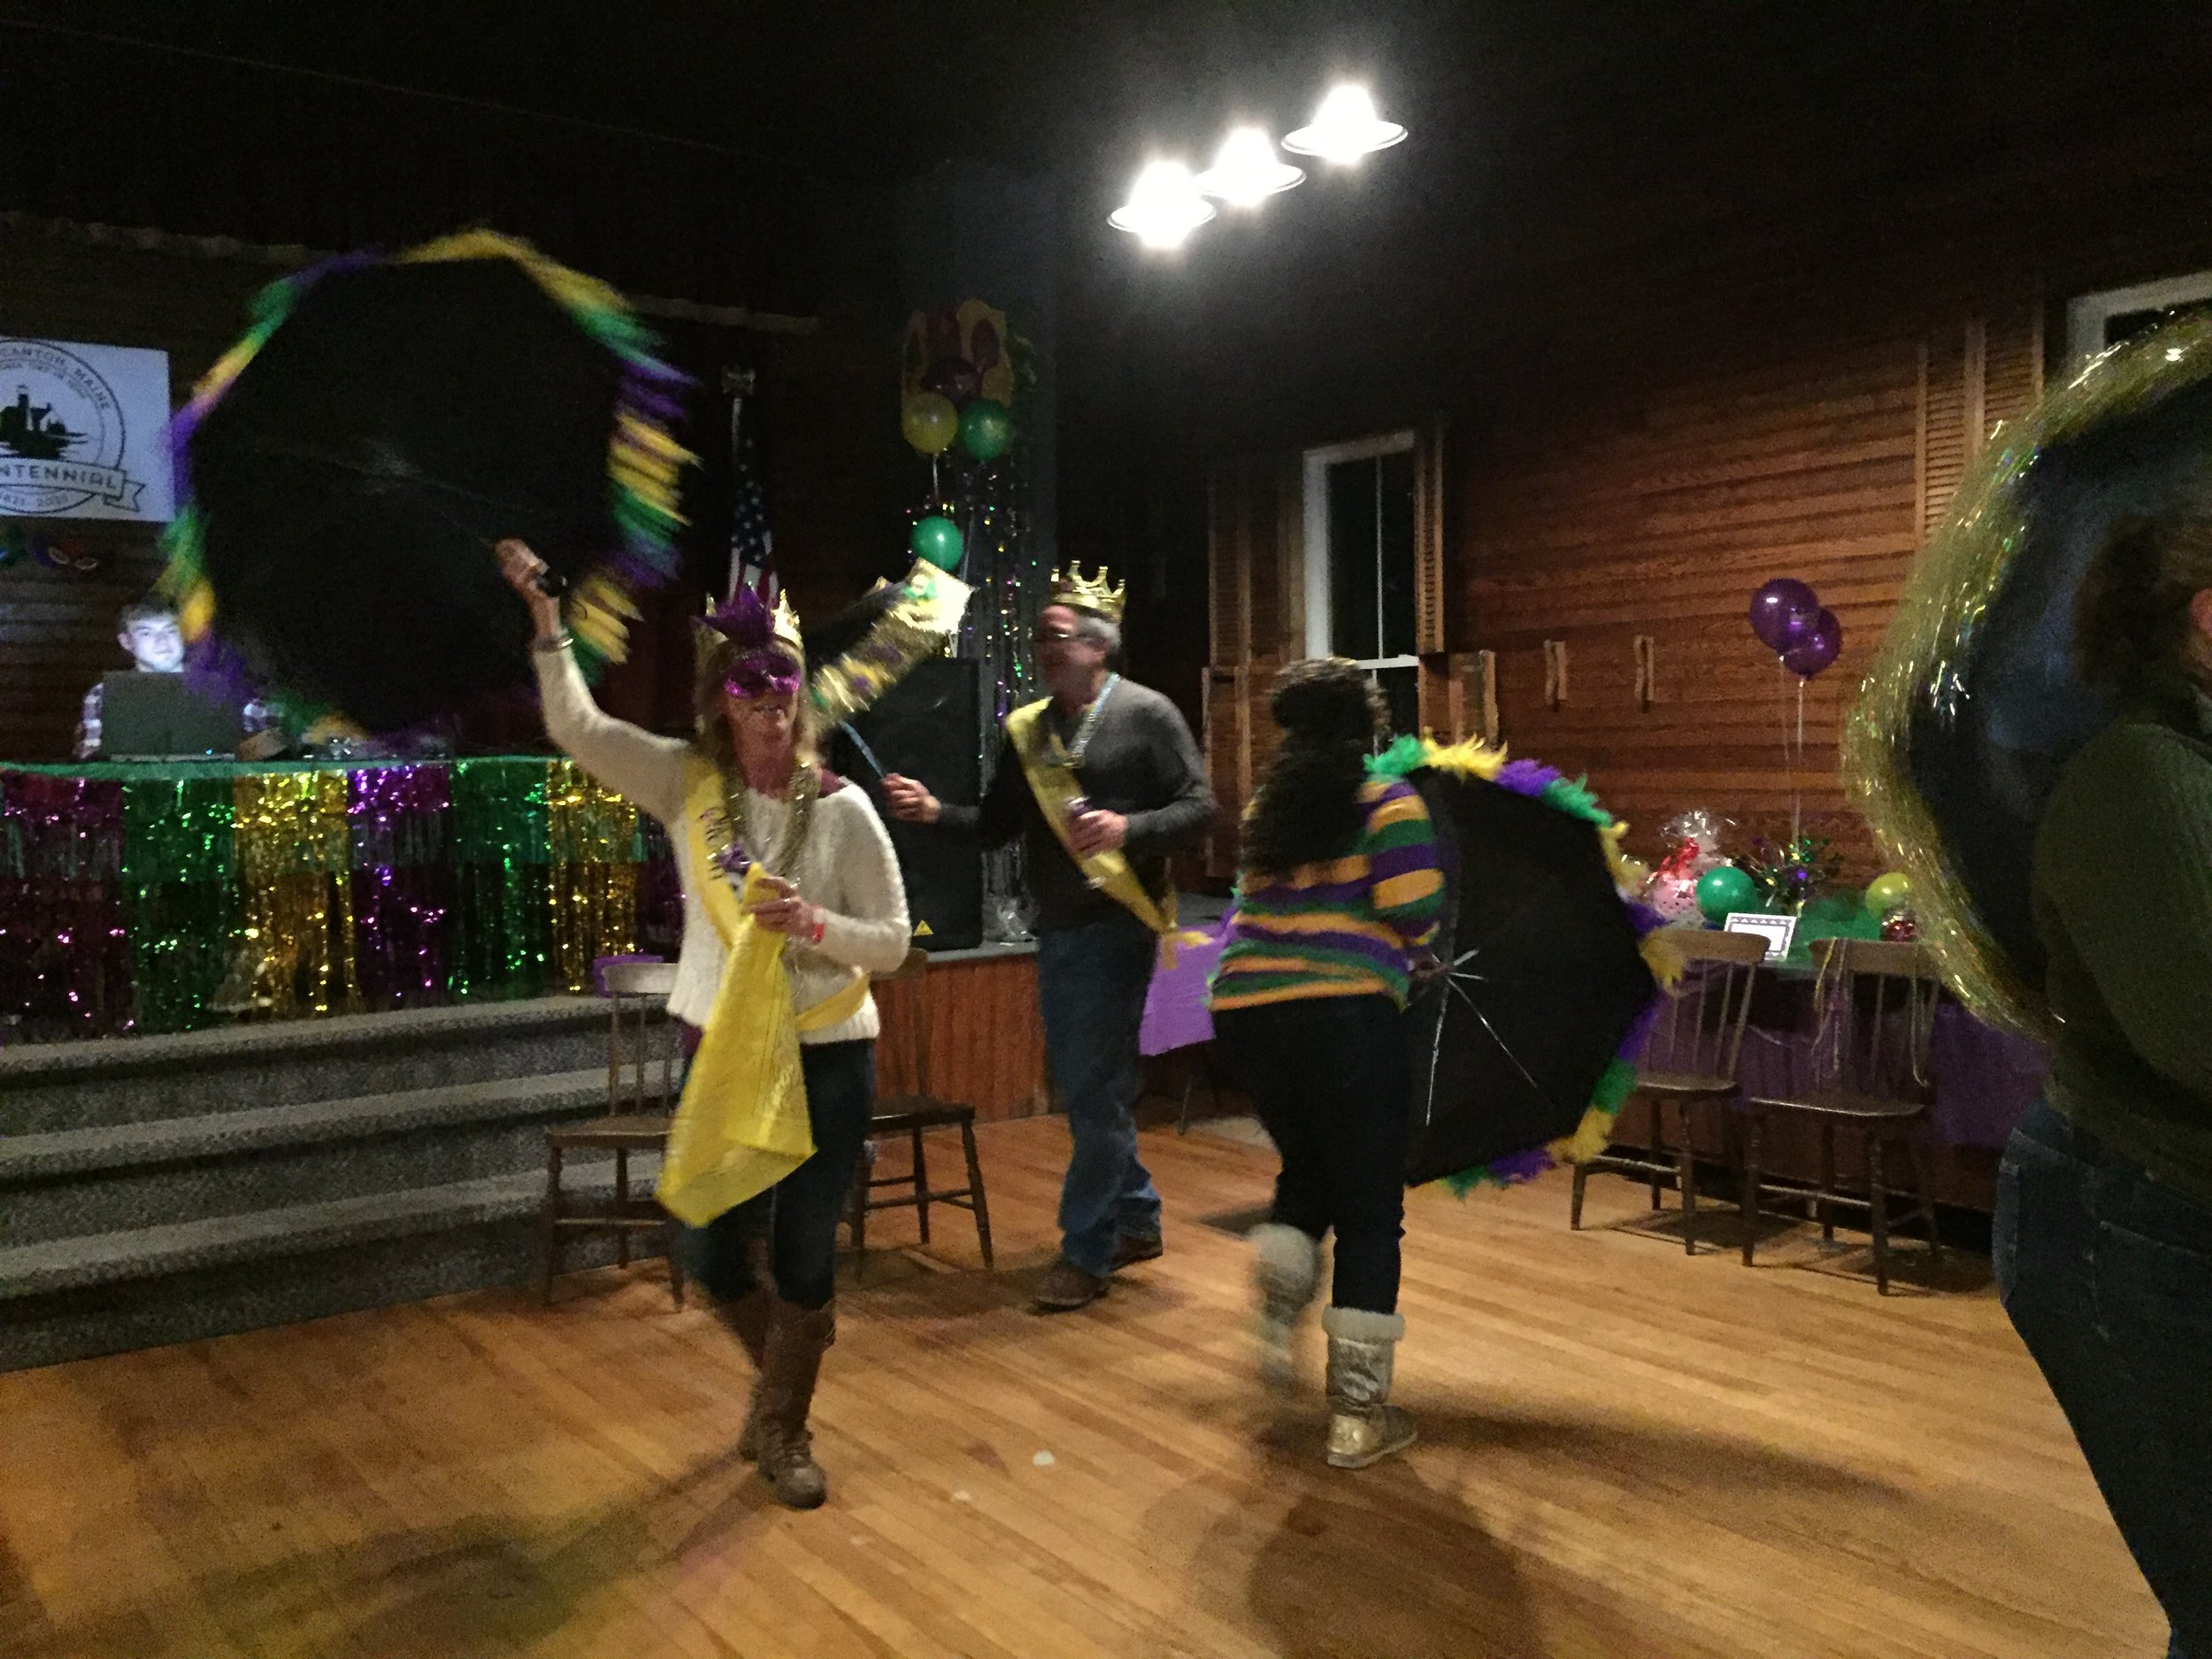 The evening culminated in a traditional Second Line Dance,